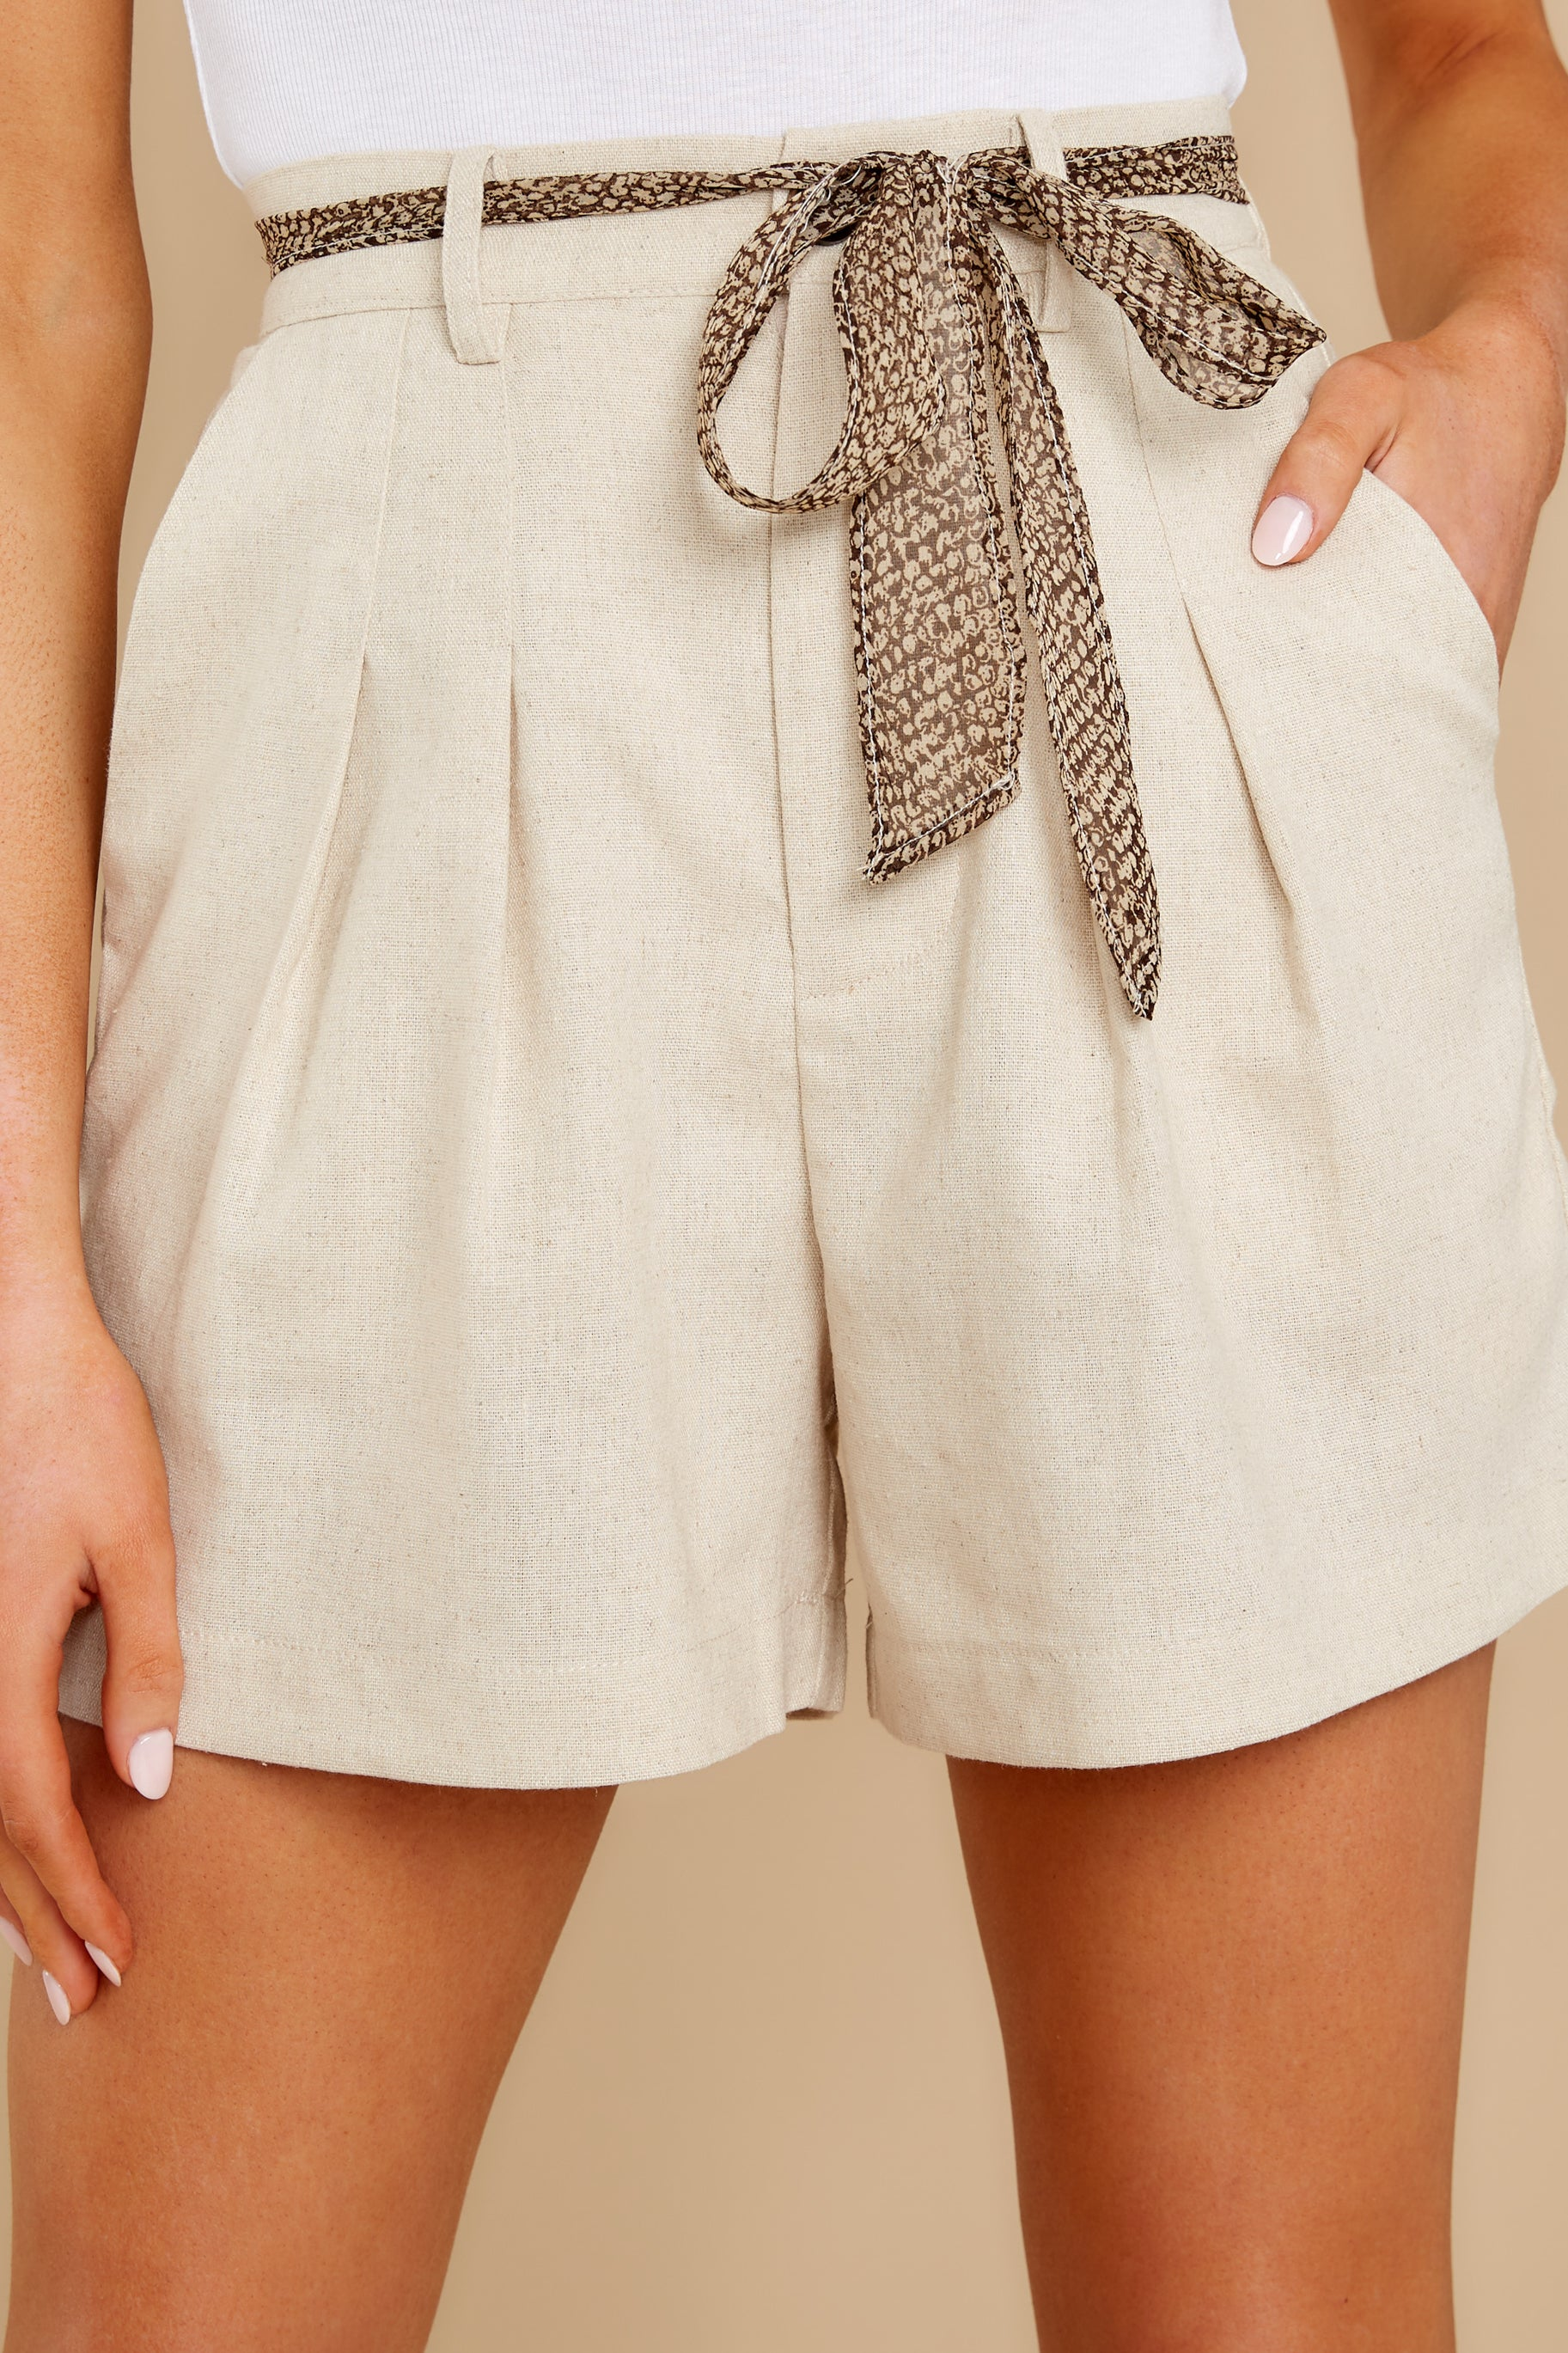 Vintage High Waisted Shorts, Sailor Shorts, Retro Shorts Other Side Beige Trouser Shorts $79.00 AT vintagedancer.com